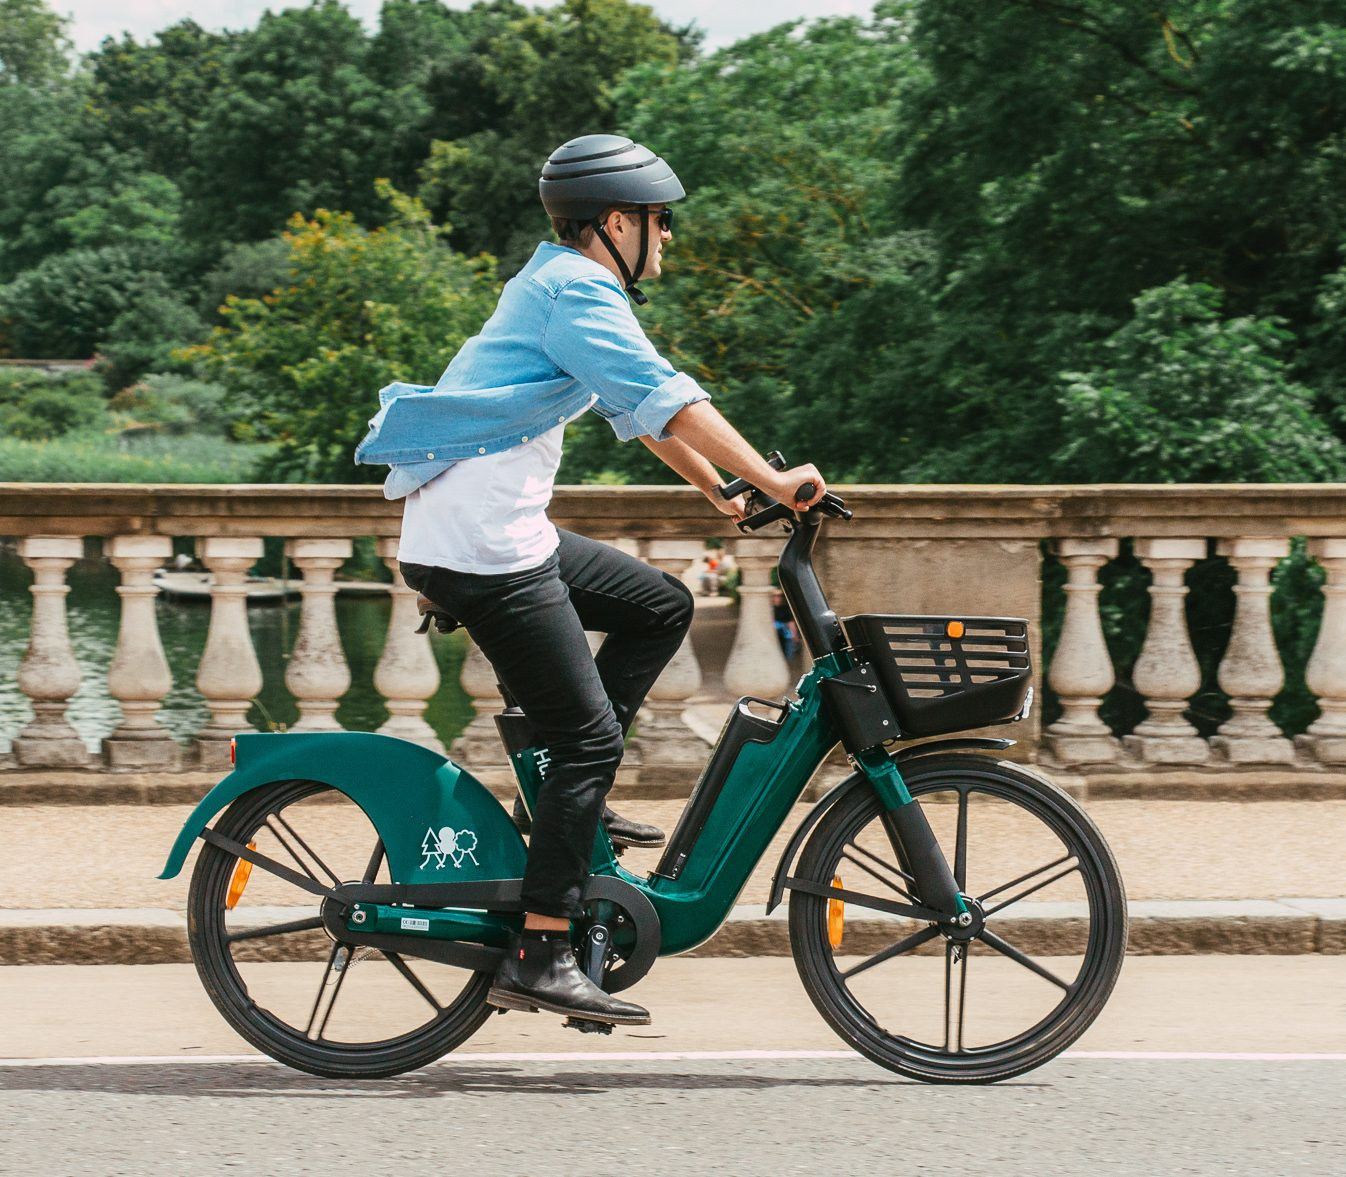 HumanForest launches new fleet of shared e-bikes in London